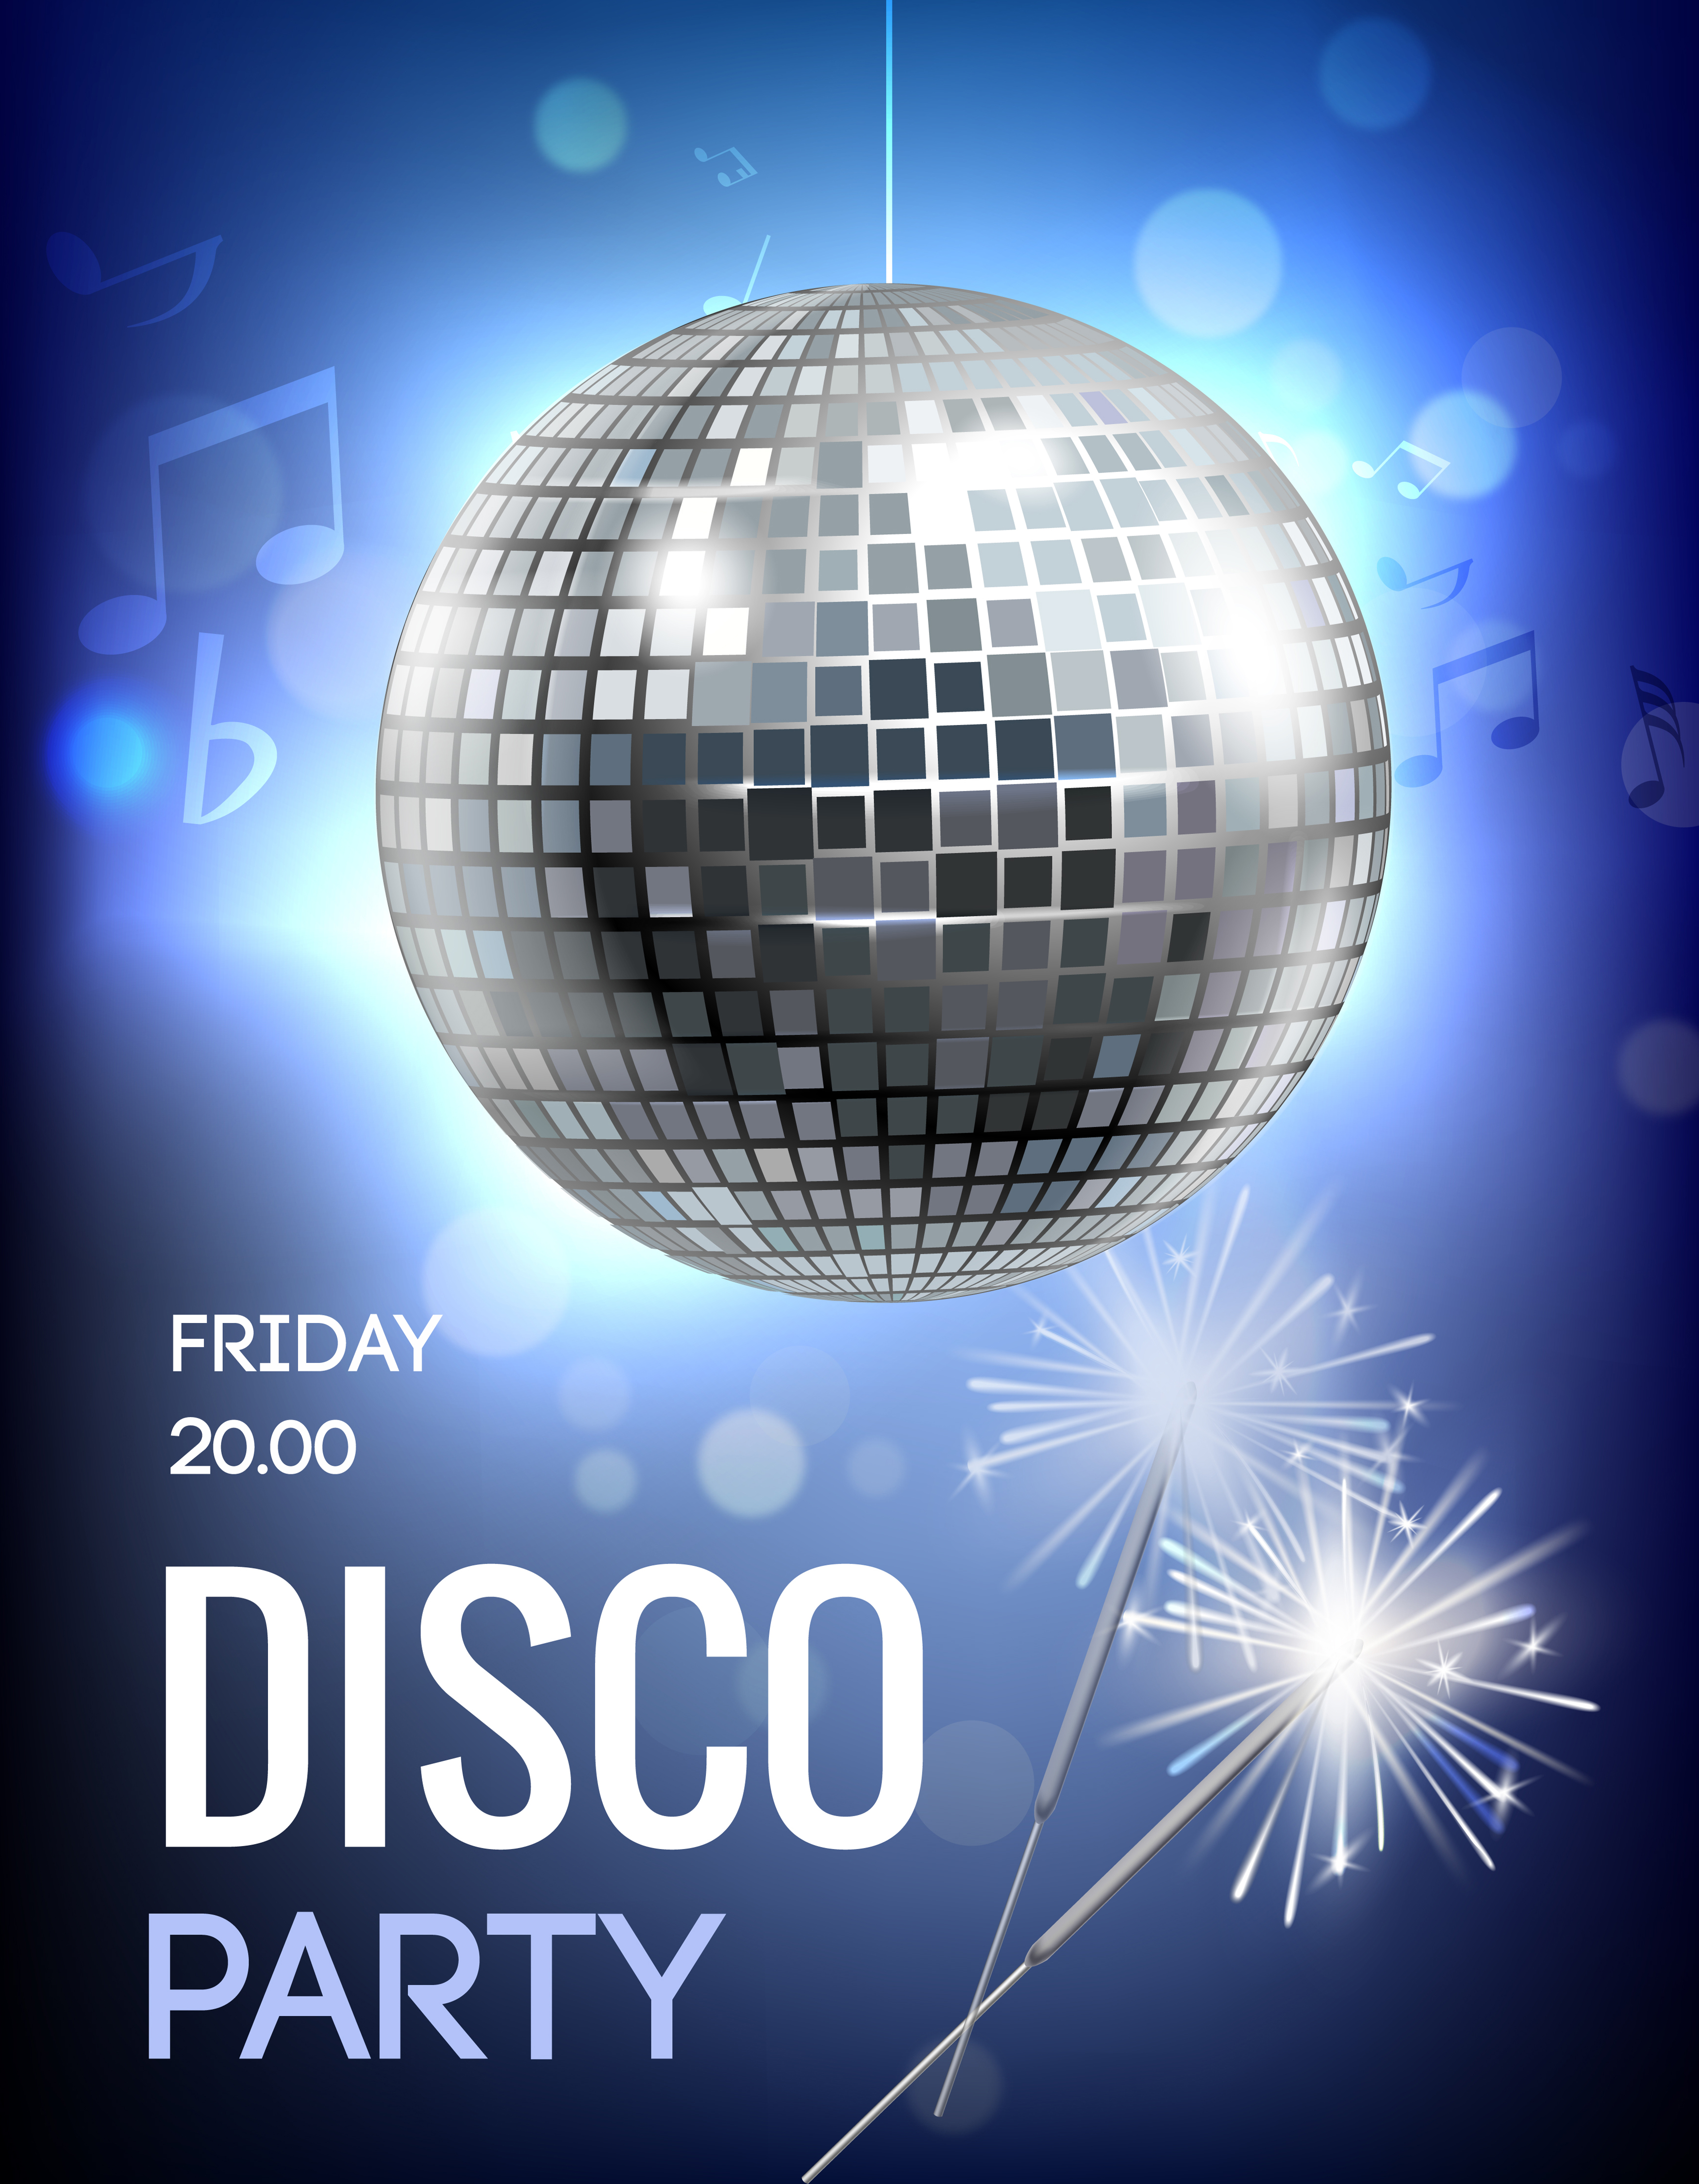 Disco Party Poster Download Free Vector Art Stock